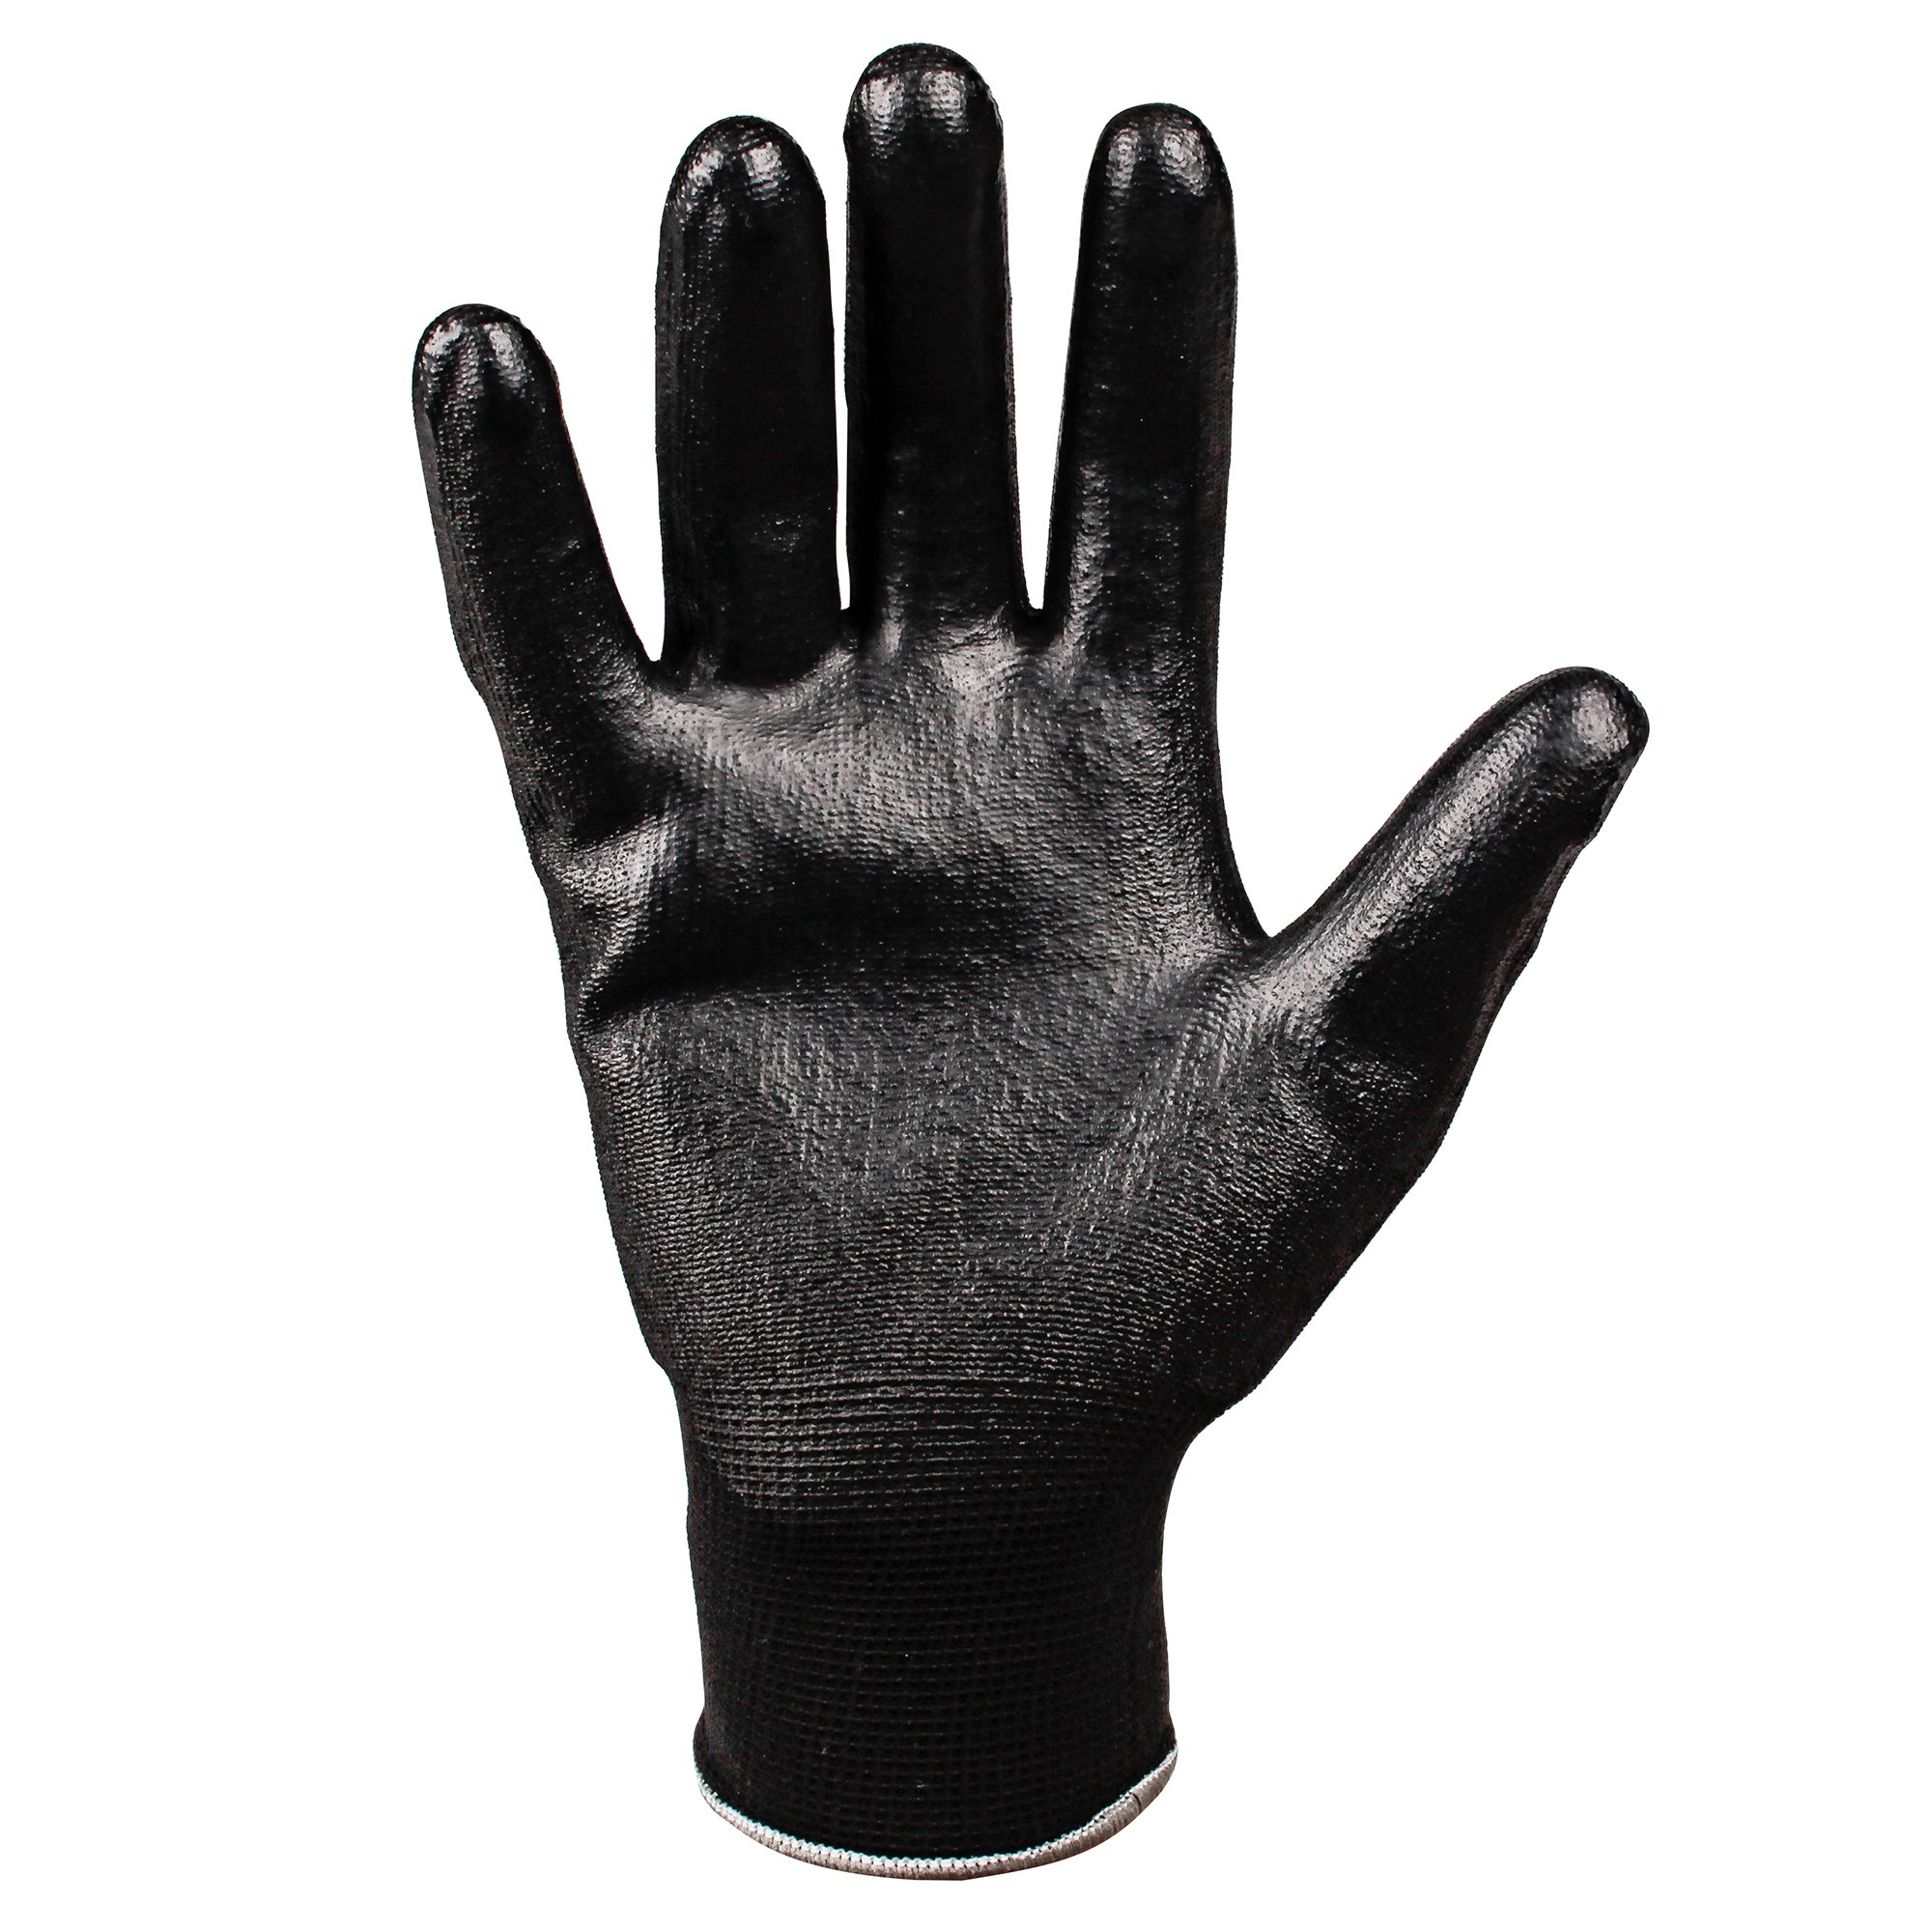 KleenGuard™ G40 Polyurethane Coated Gloves (42606), Small, High Dexterity, Black, 6 Pairs for Vending Bag, 10 Bags / Case - 42606